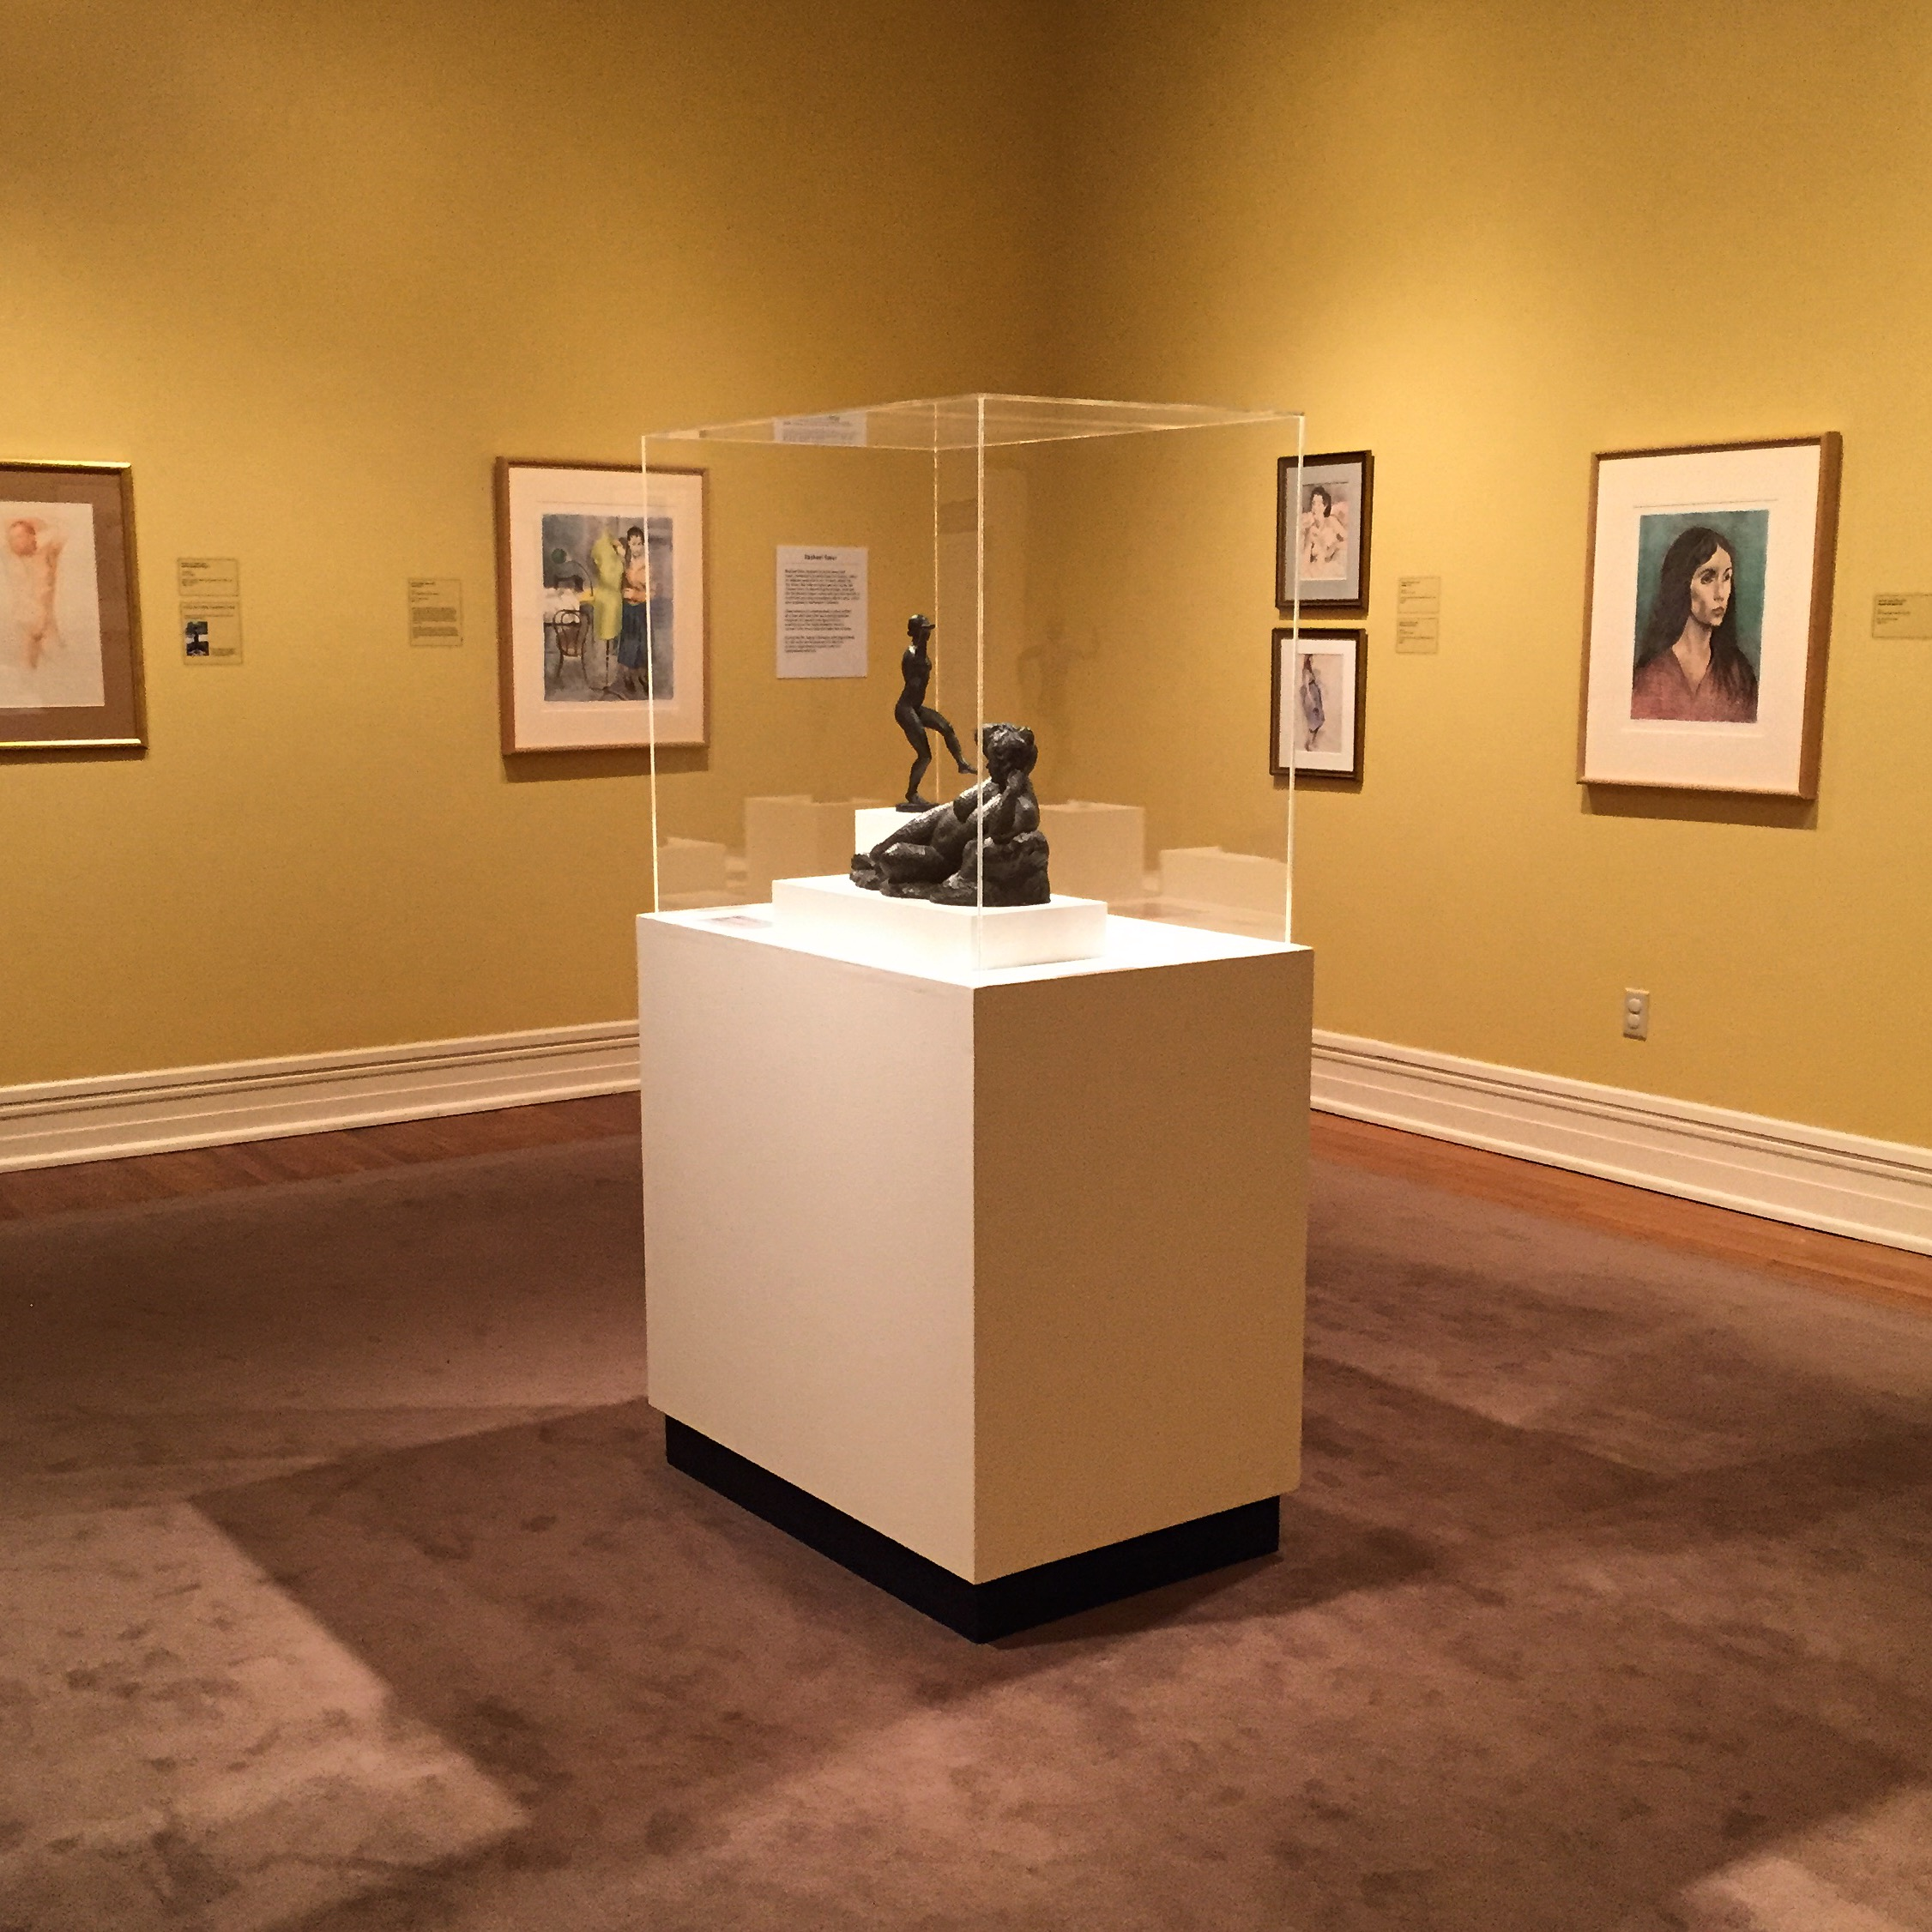 A gallery room with paintings on the wall and a glass case with a small sculpture.